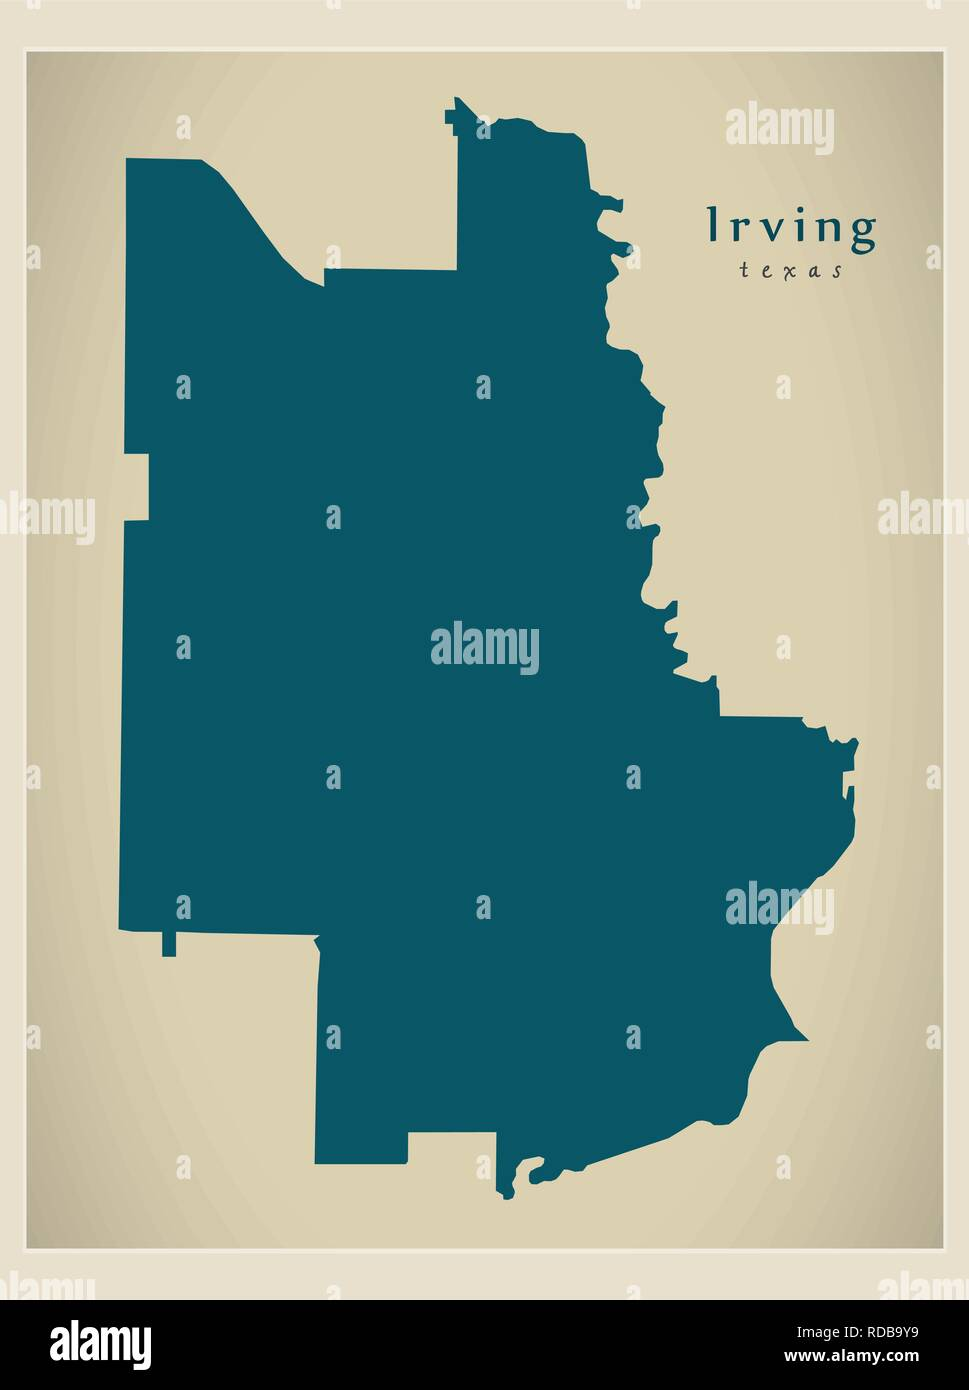 Map Of Texas City.Modern City Map Irving Texas City Of The Usa Stock Vector Art